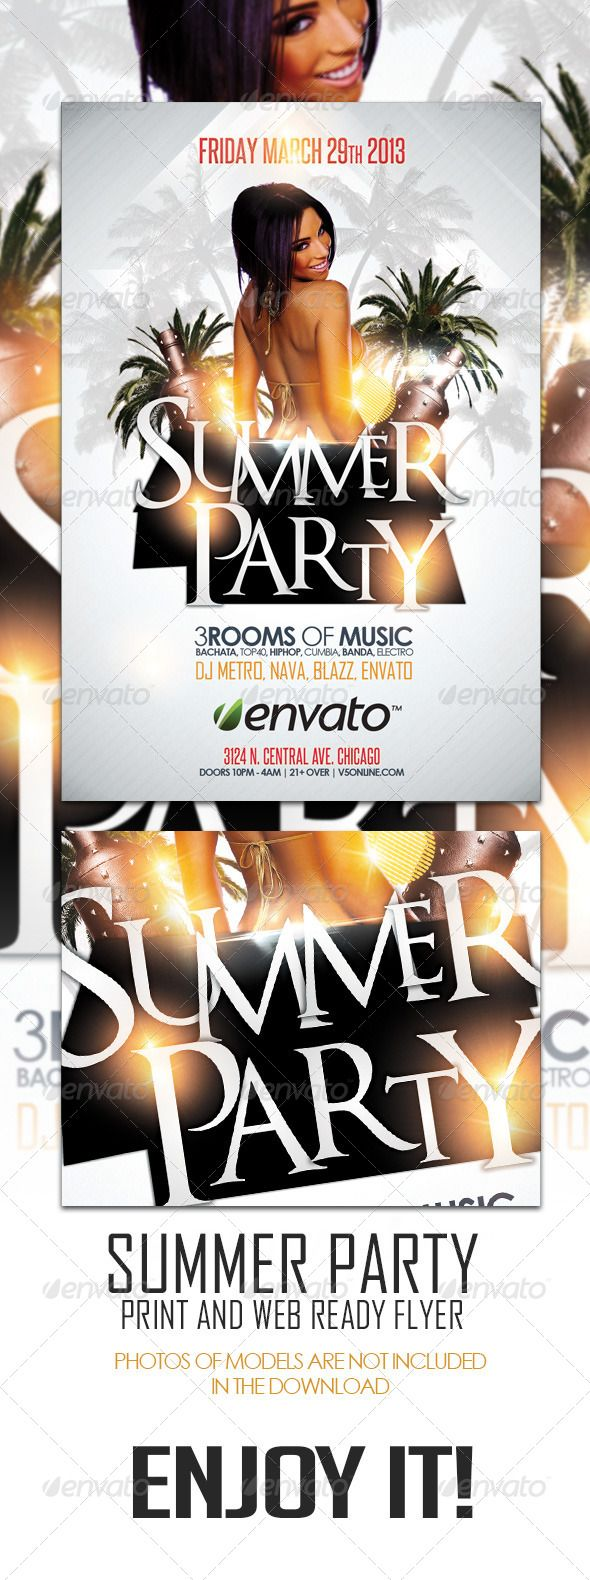 Summer Party Flyer - GraphicRiver Item for Sale http://www.expertapplication.com/